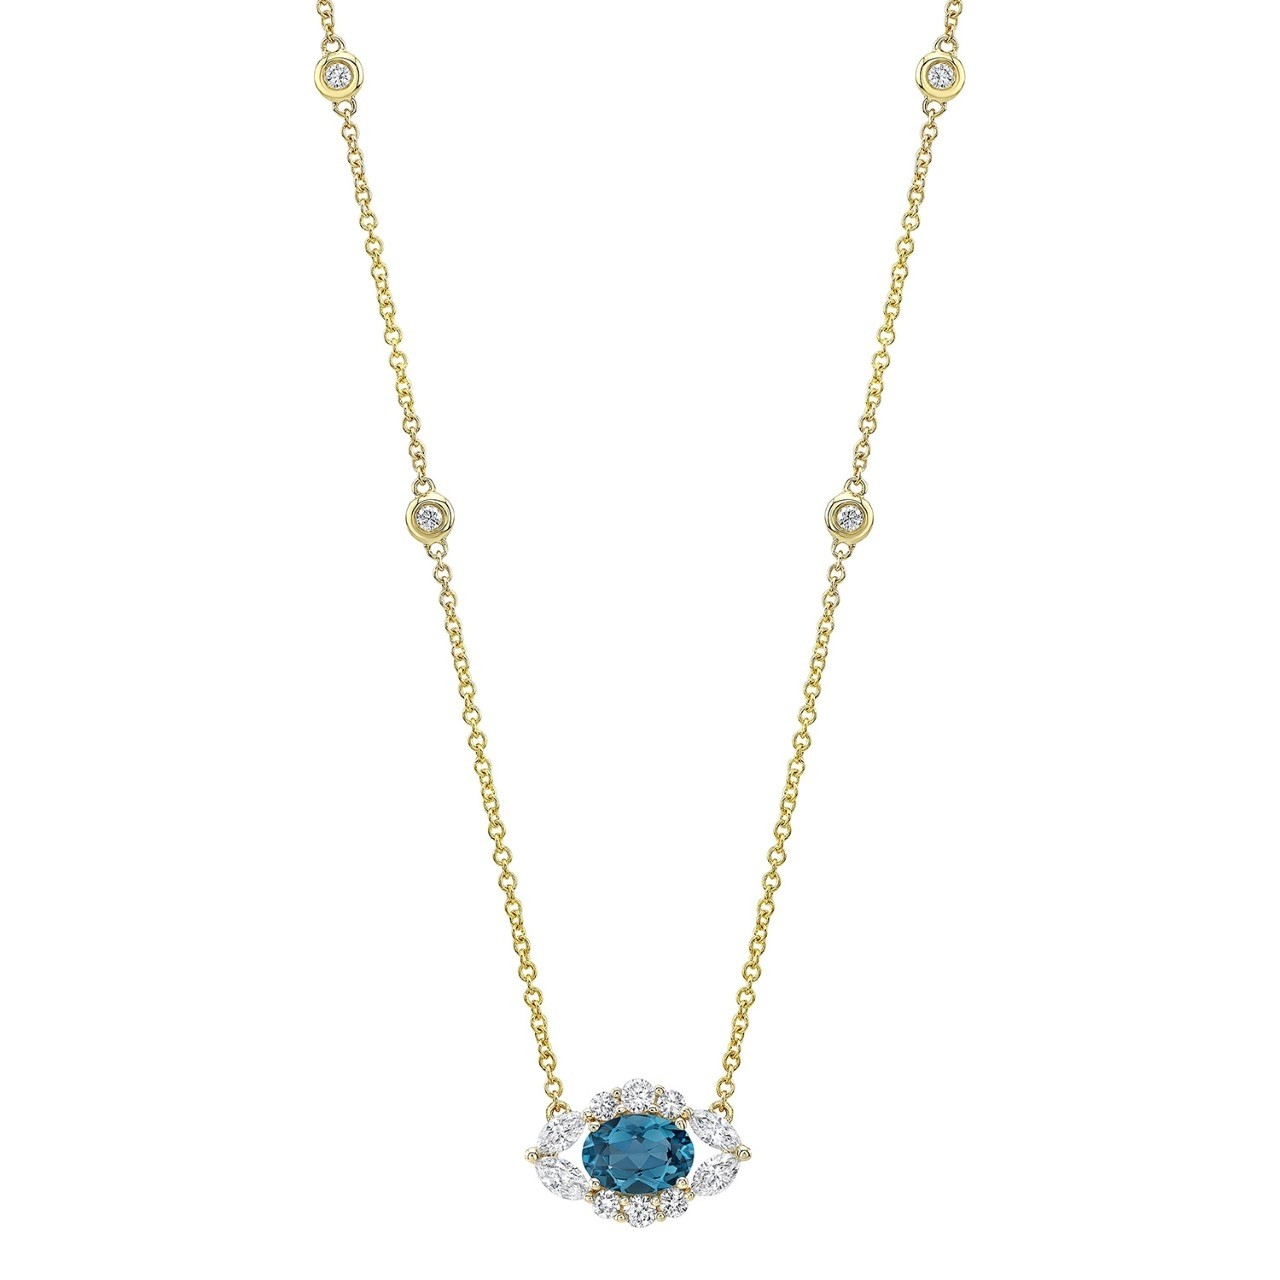 14k Yellow Gold Diamond and Blue Topaz Oval Evil Eye Necklace